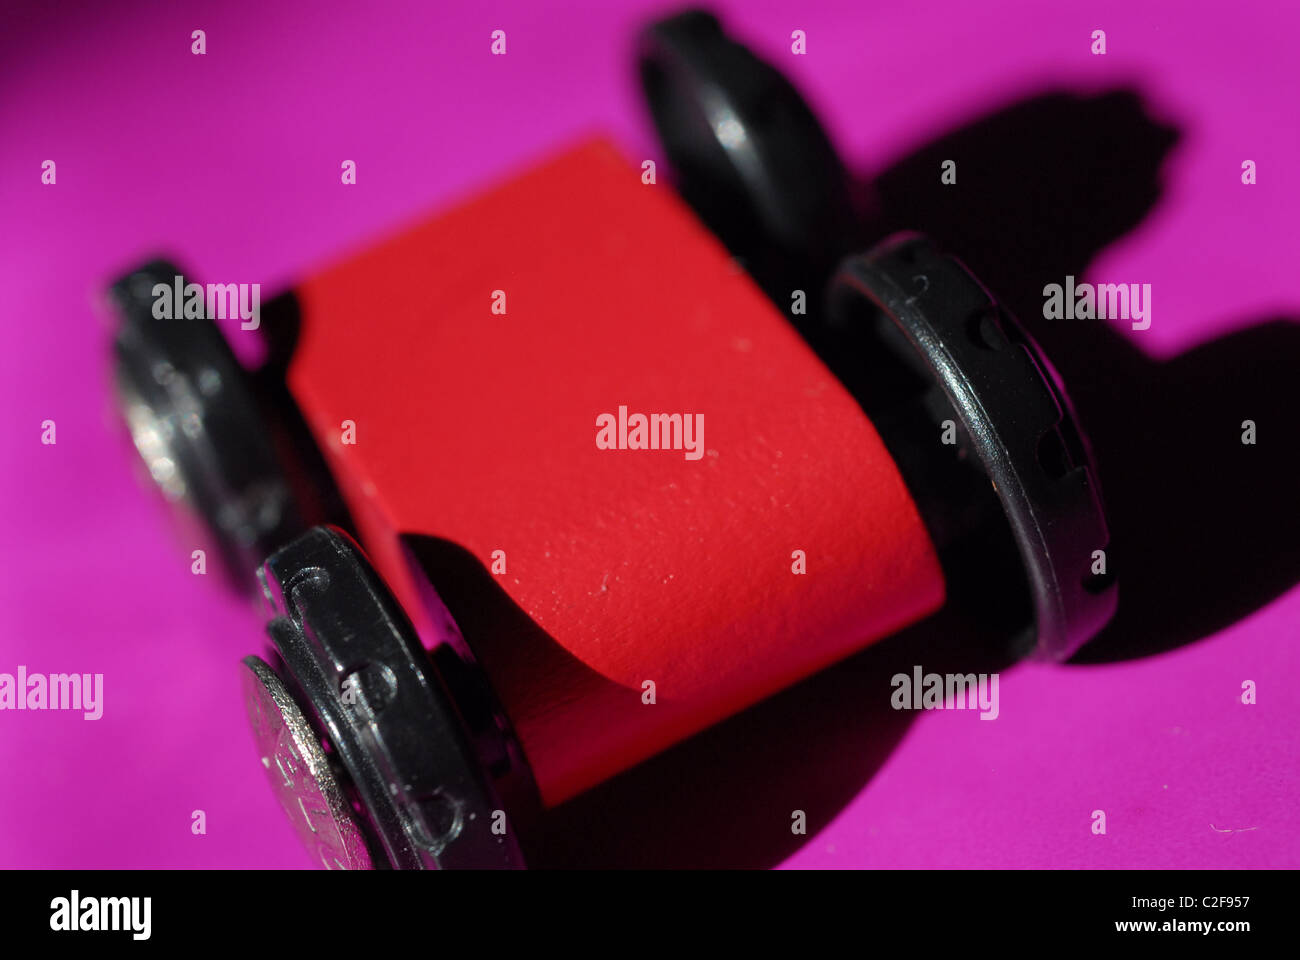 Red wooden toy car against bright pink background. - Stock Image